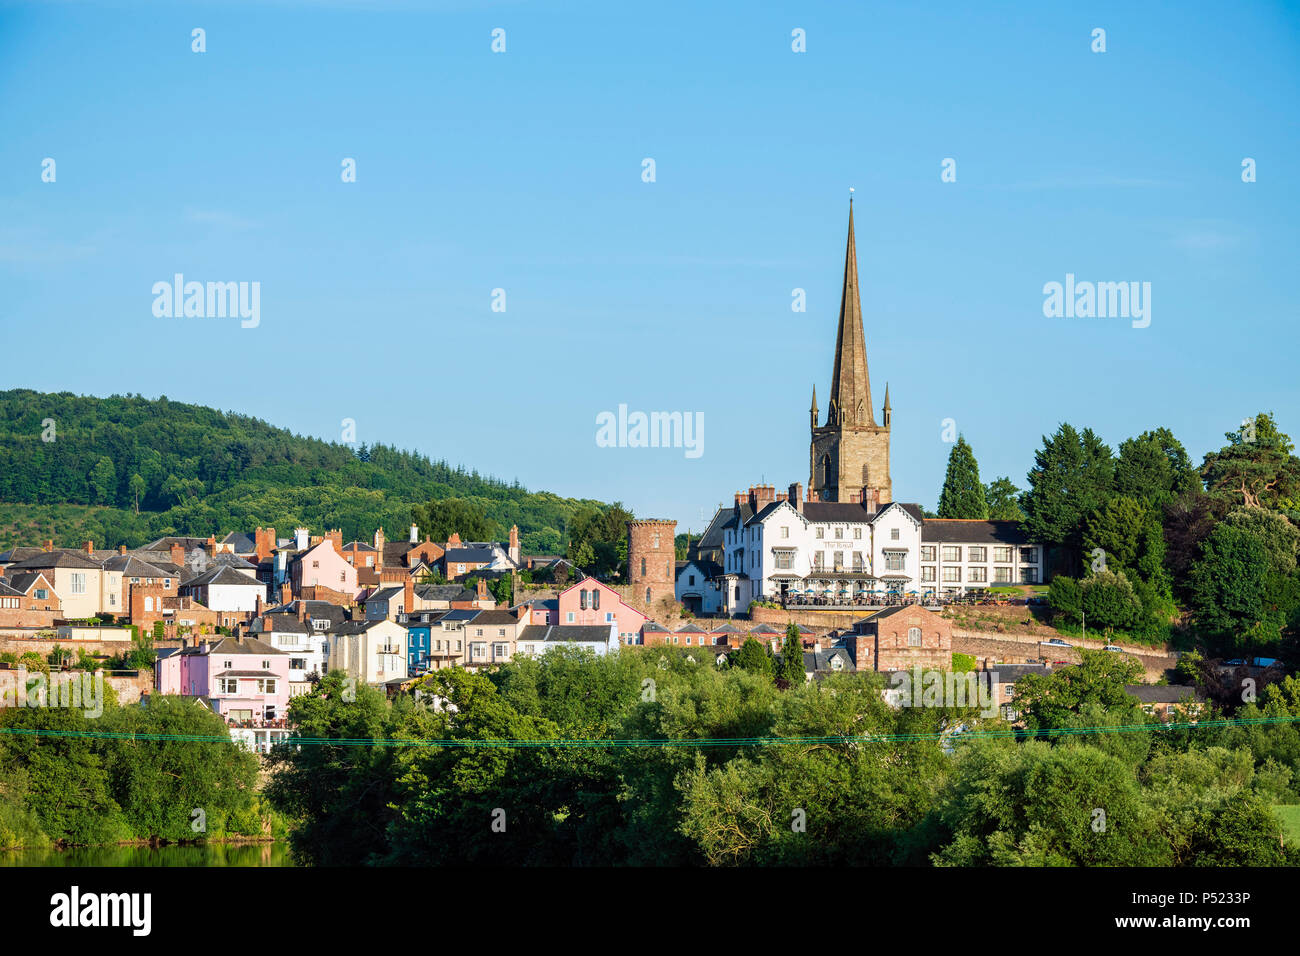 Ross on Wye, Herefordshire, UK. Photographed on a summer evening. - Stock Image